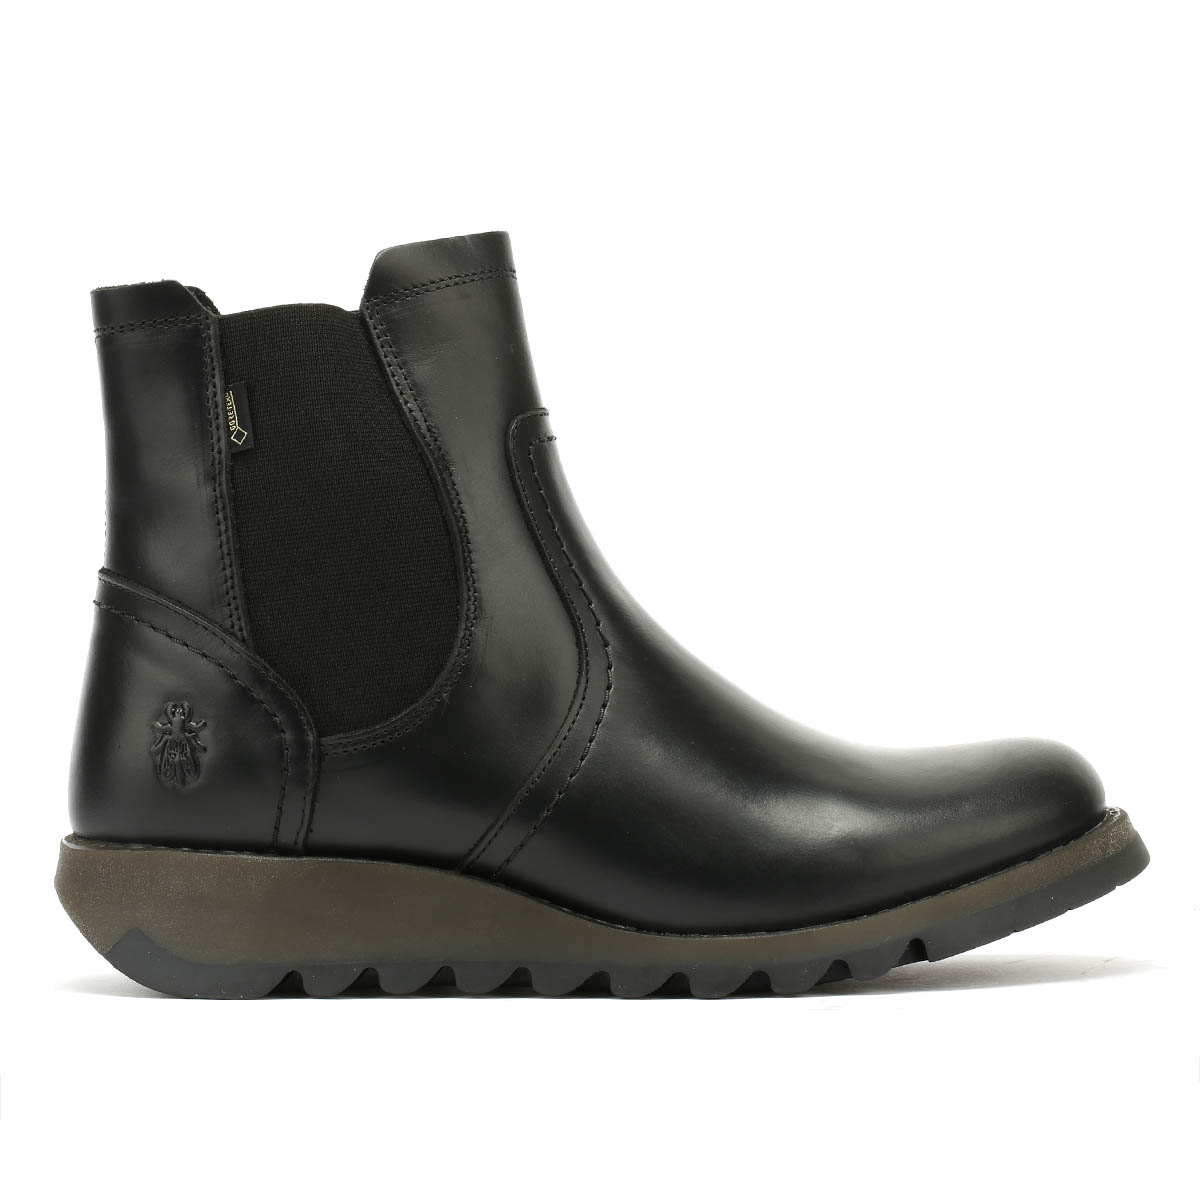 Fly-London-Womens-Boots-Black-Scon-Rug-Ladies-Leather-Winter-Ankle-Shoes thumbnail 3